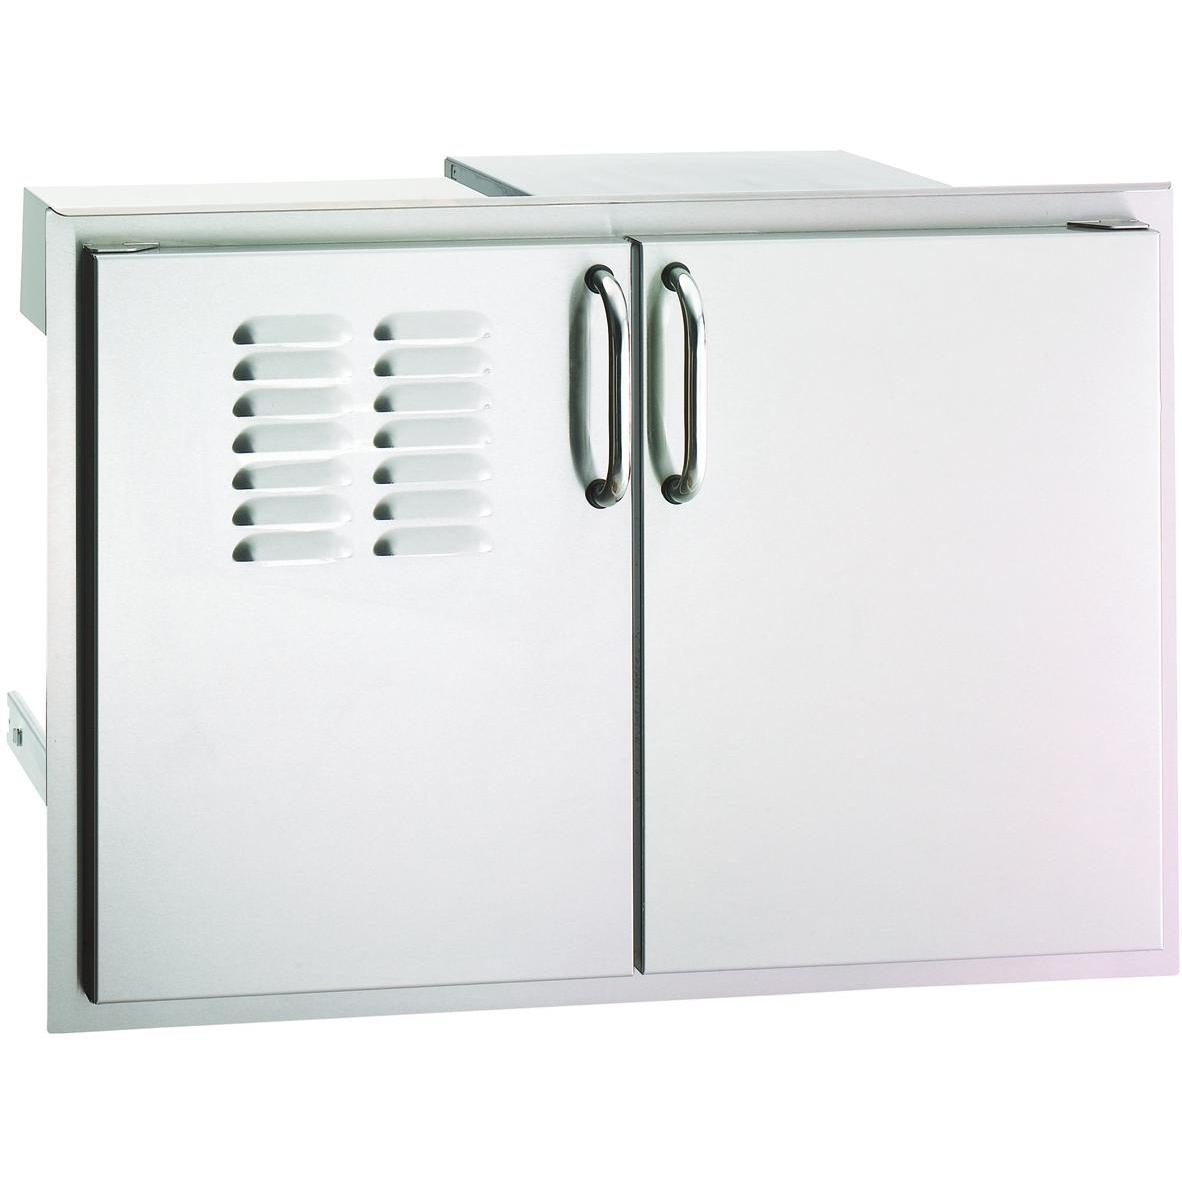 Picture of Fire Magic Select 30-Inch Double Access Door With Drawers And Propane Tank Storage